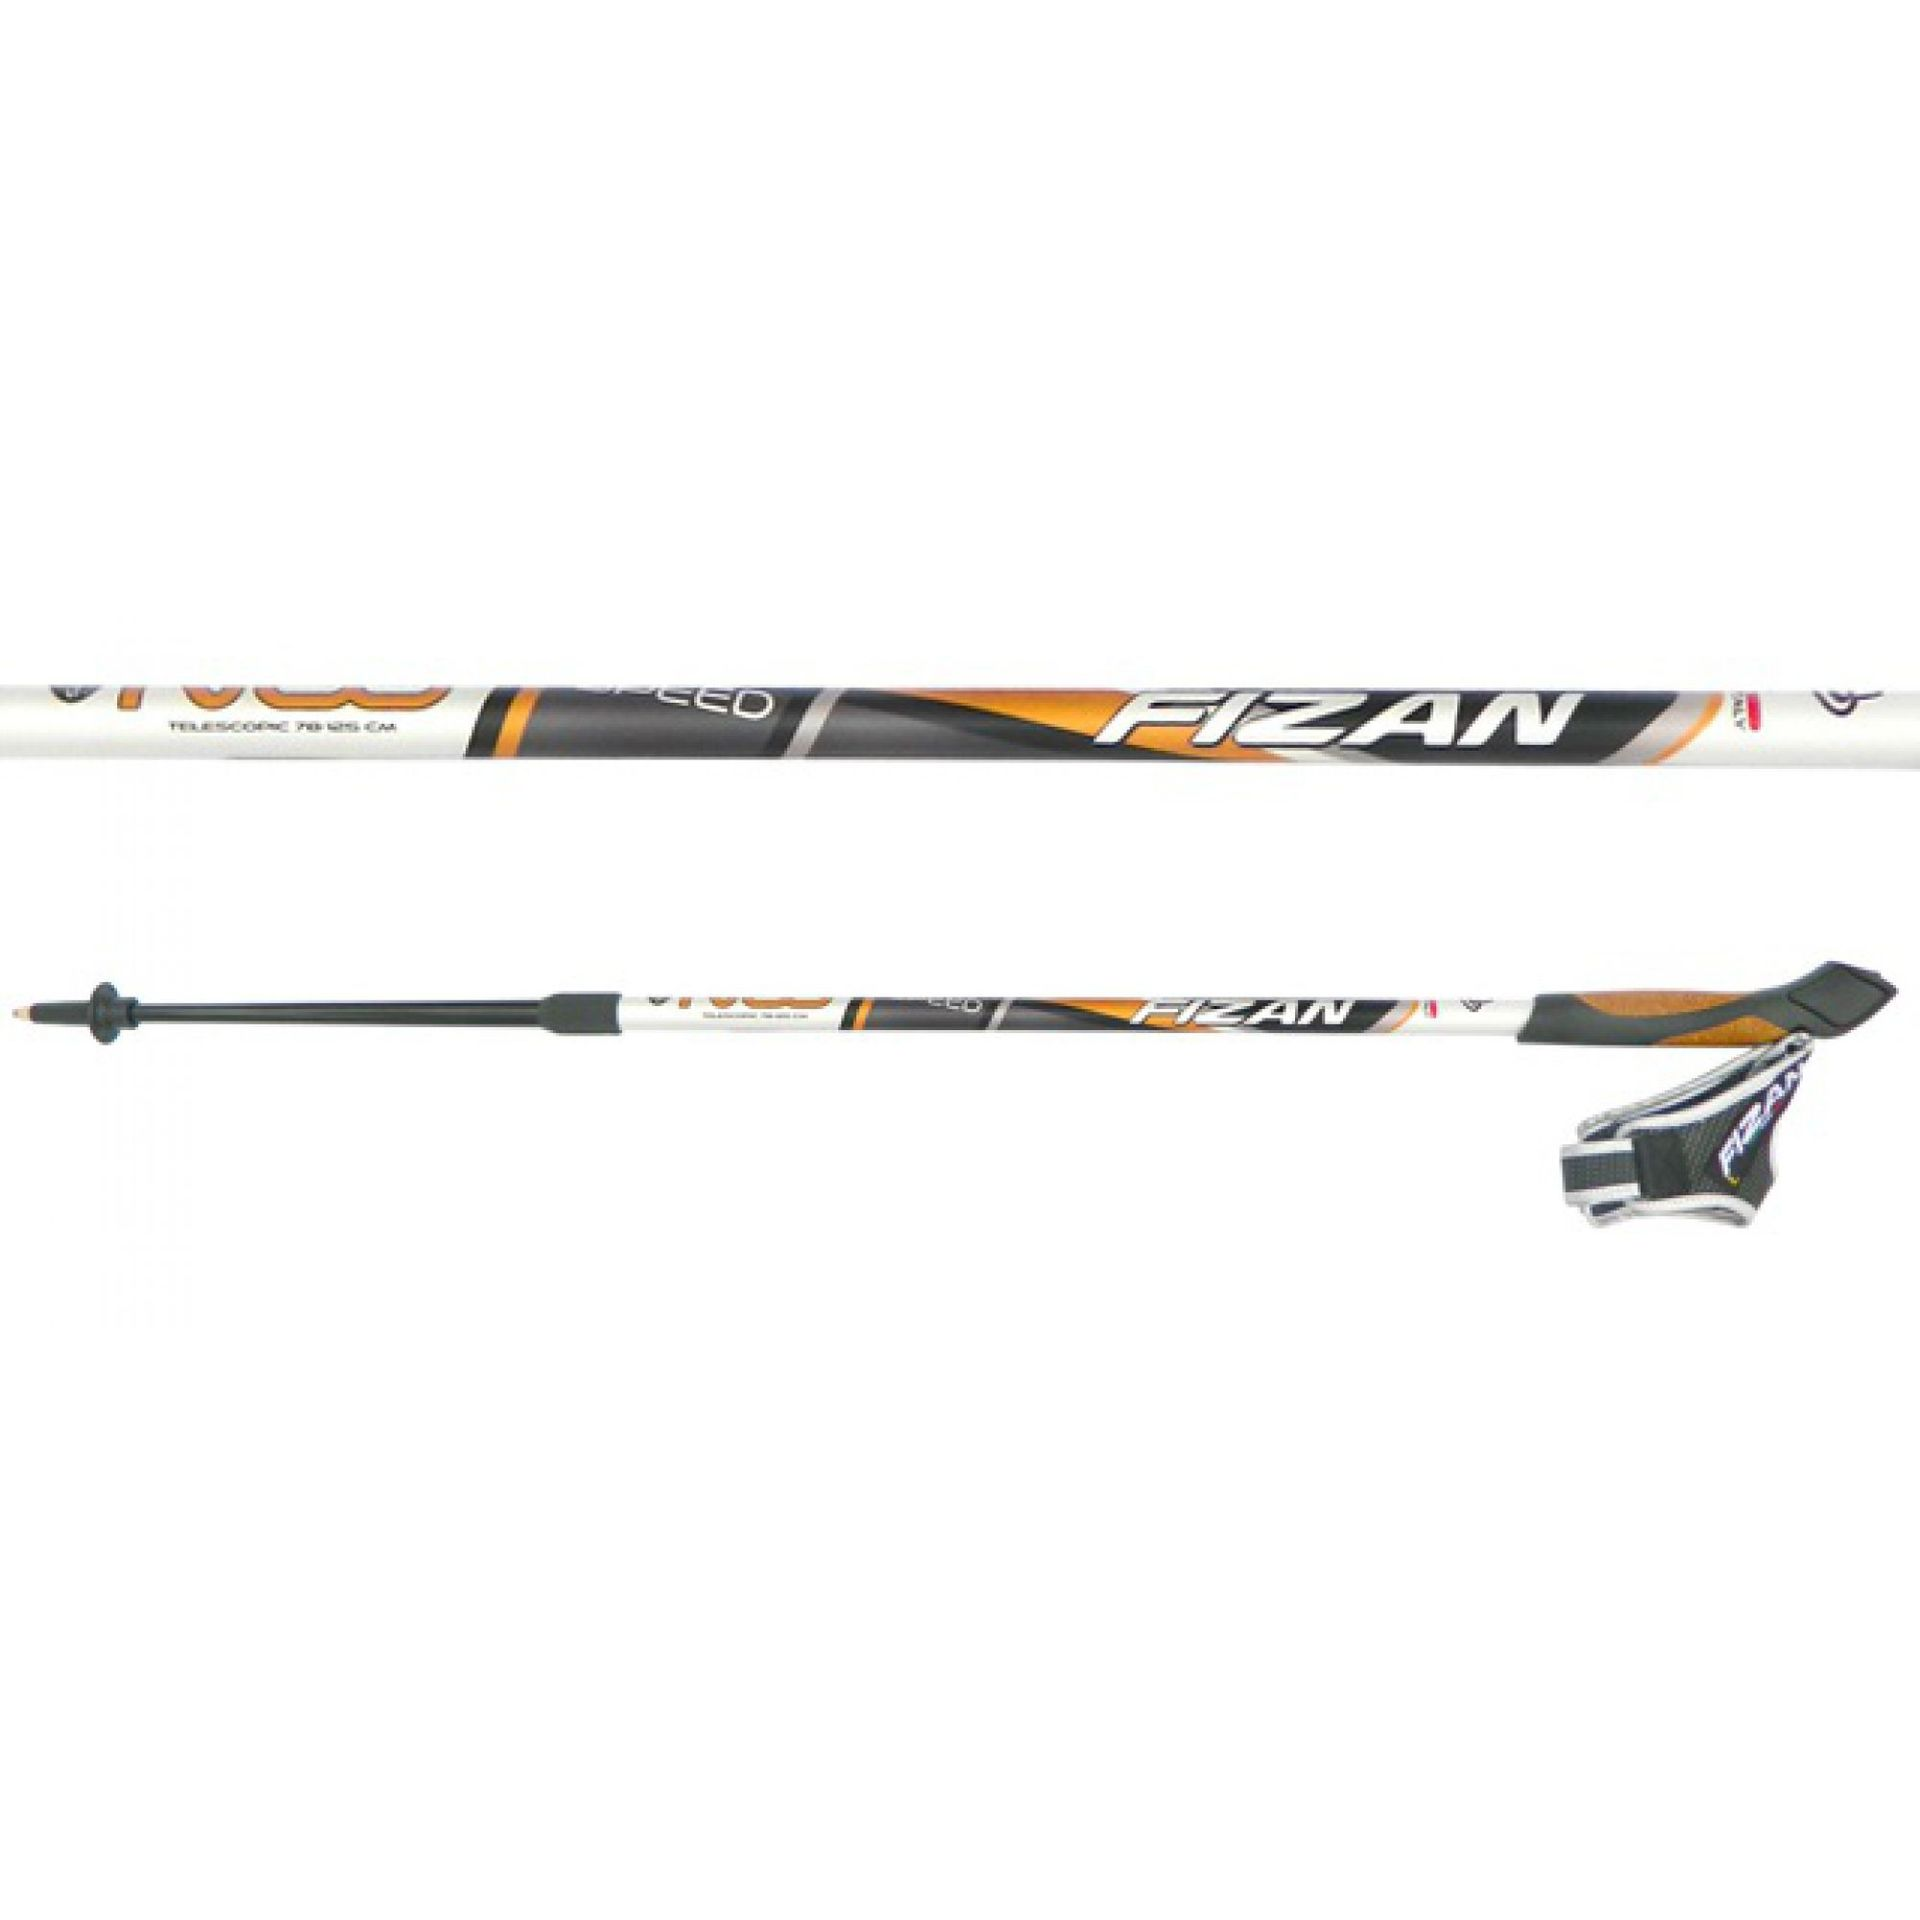 Kije Nordic Walking Fizan Speed White